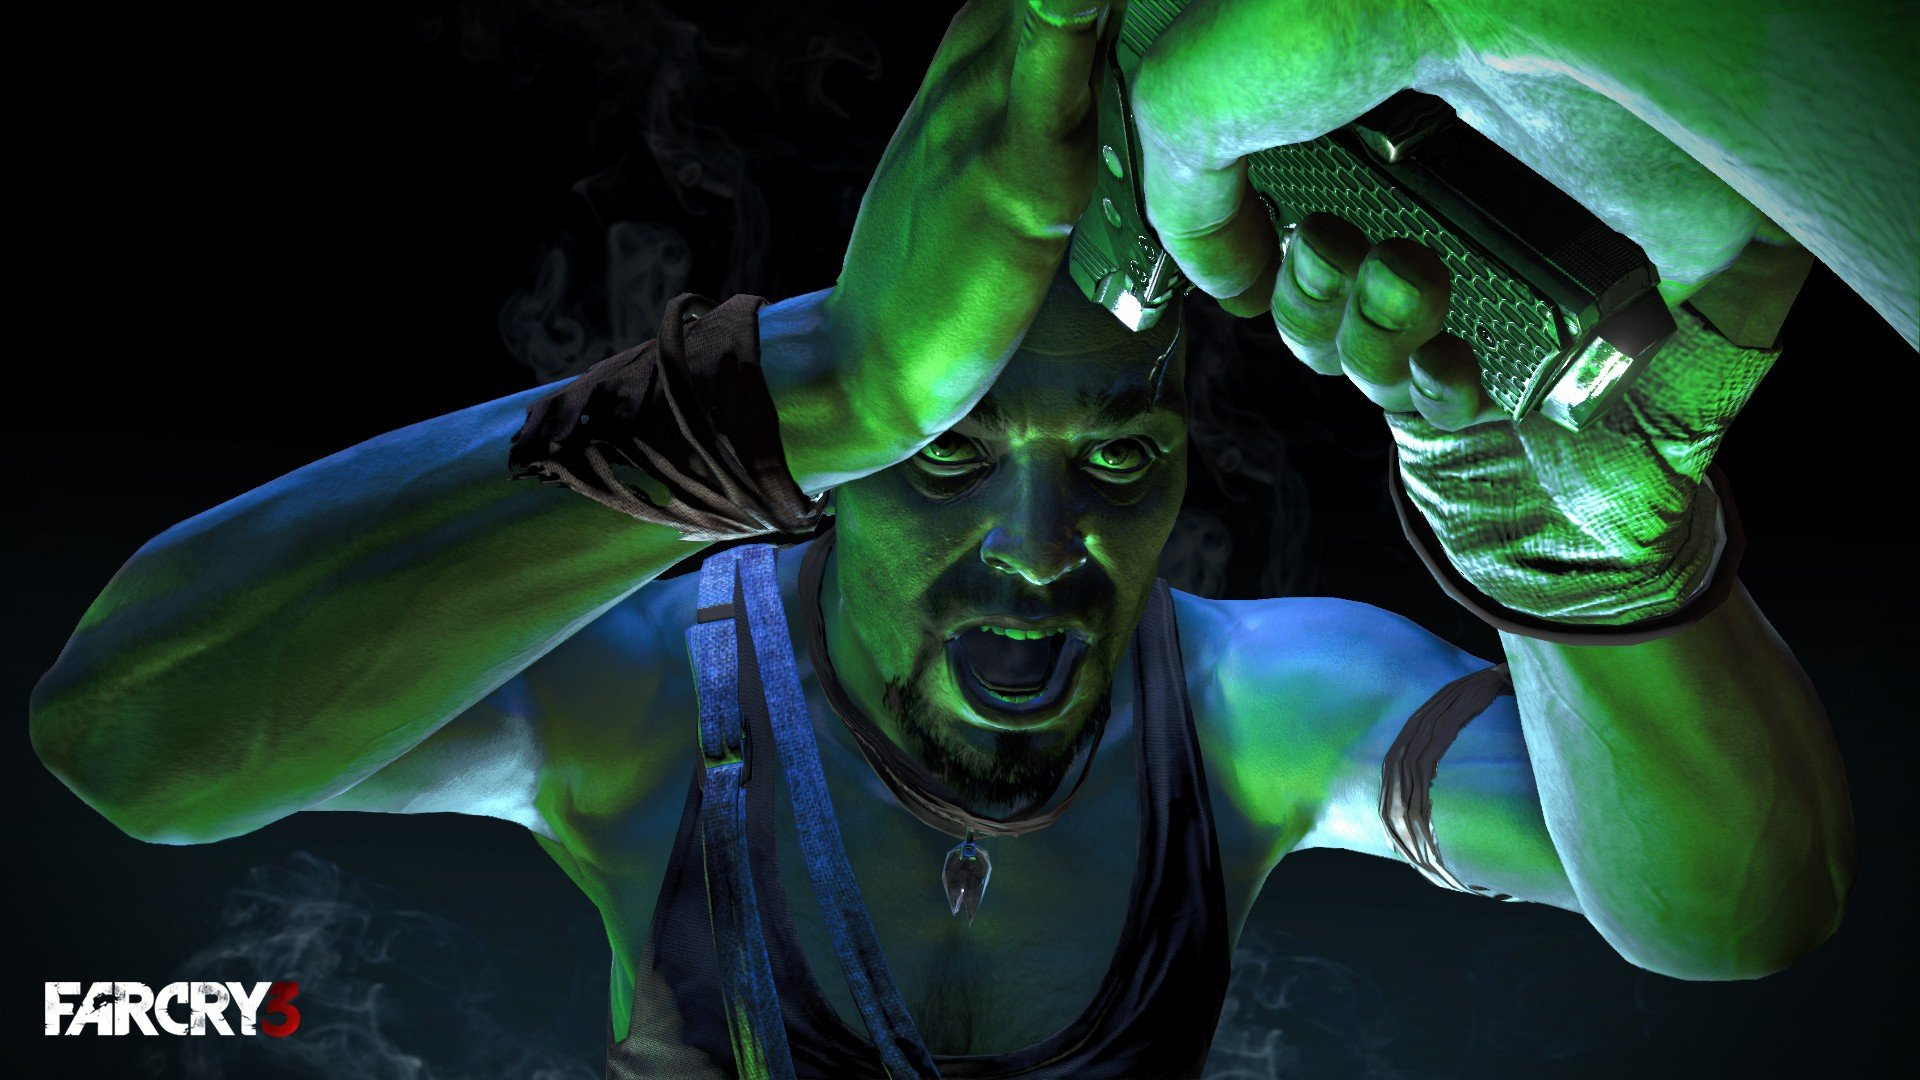 PlayStation's July Savings sale knocks Far Cry 3 Classic Edition down to $3